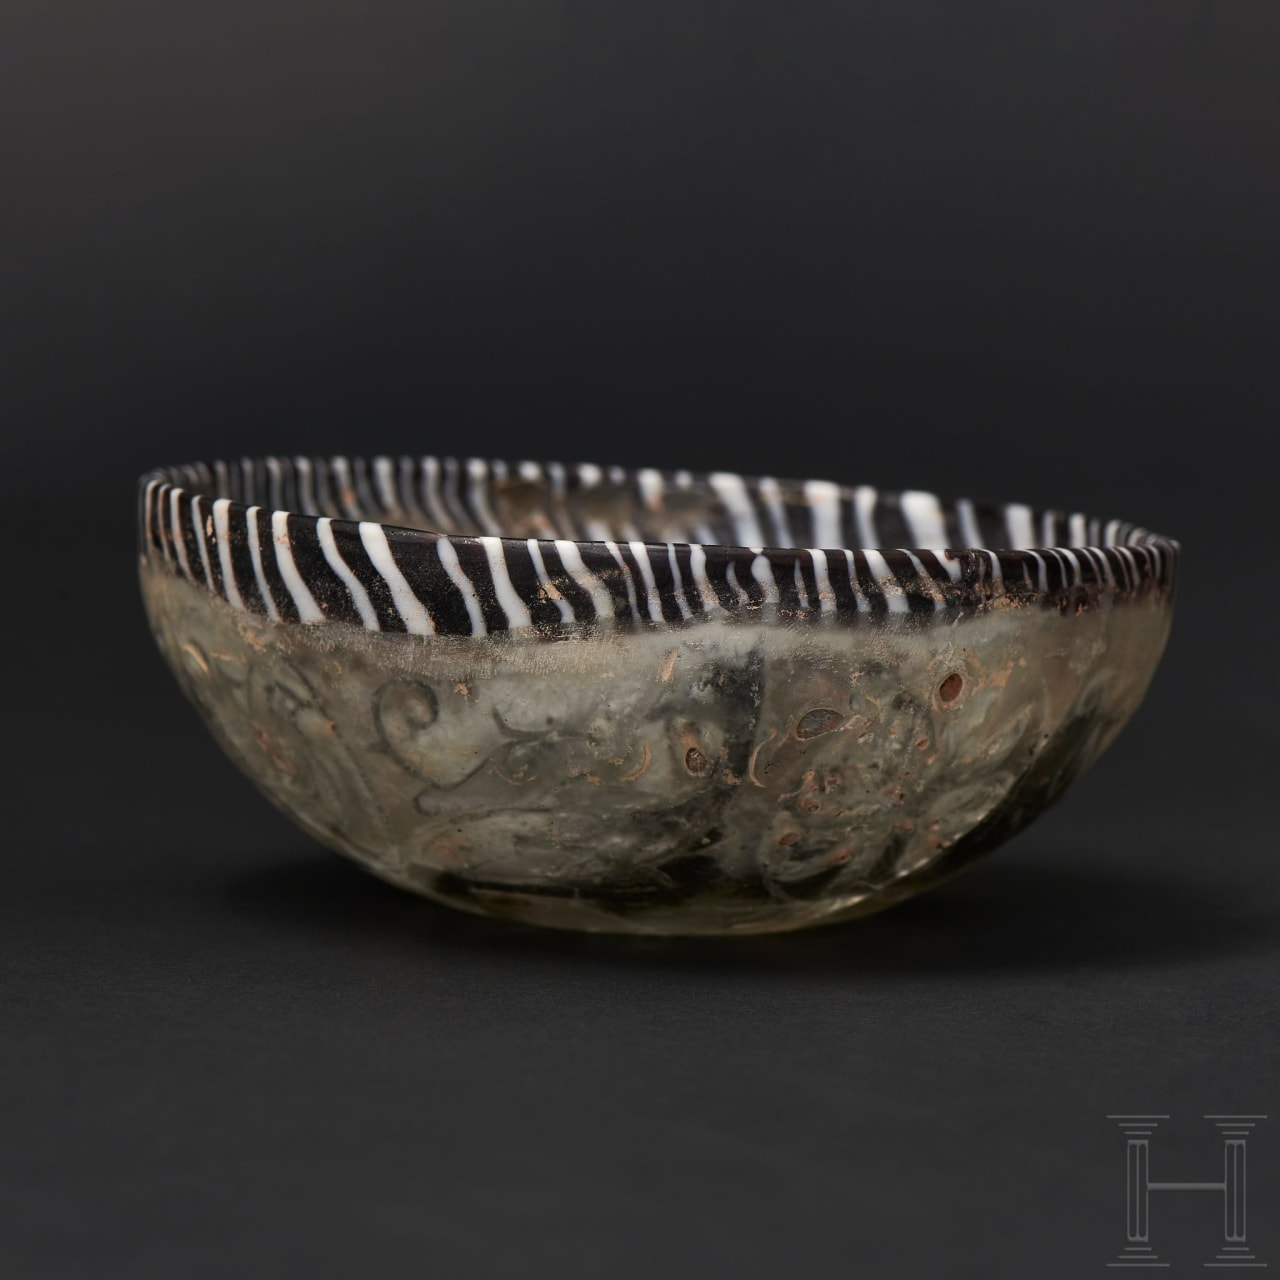 A late Hellenistic/early Roman glass bowl with floral décor in pigment coating between double walls, 1st century B.C. – 1st century A.D.